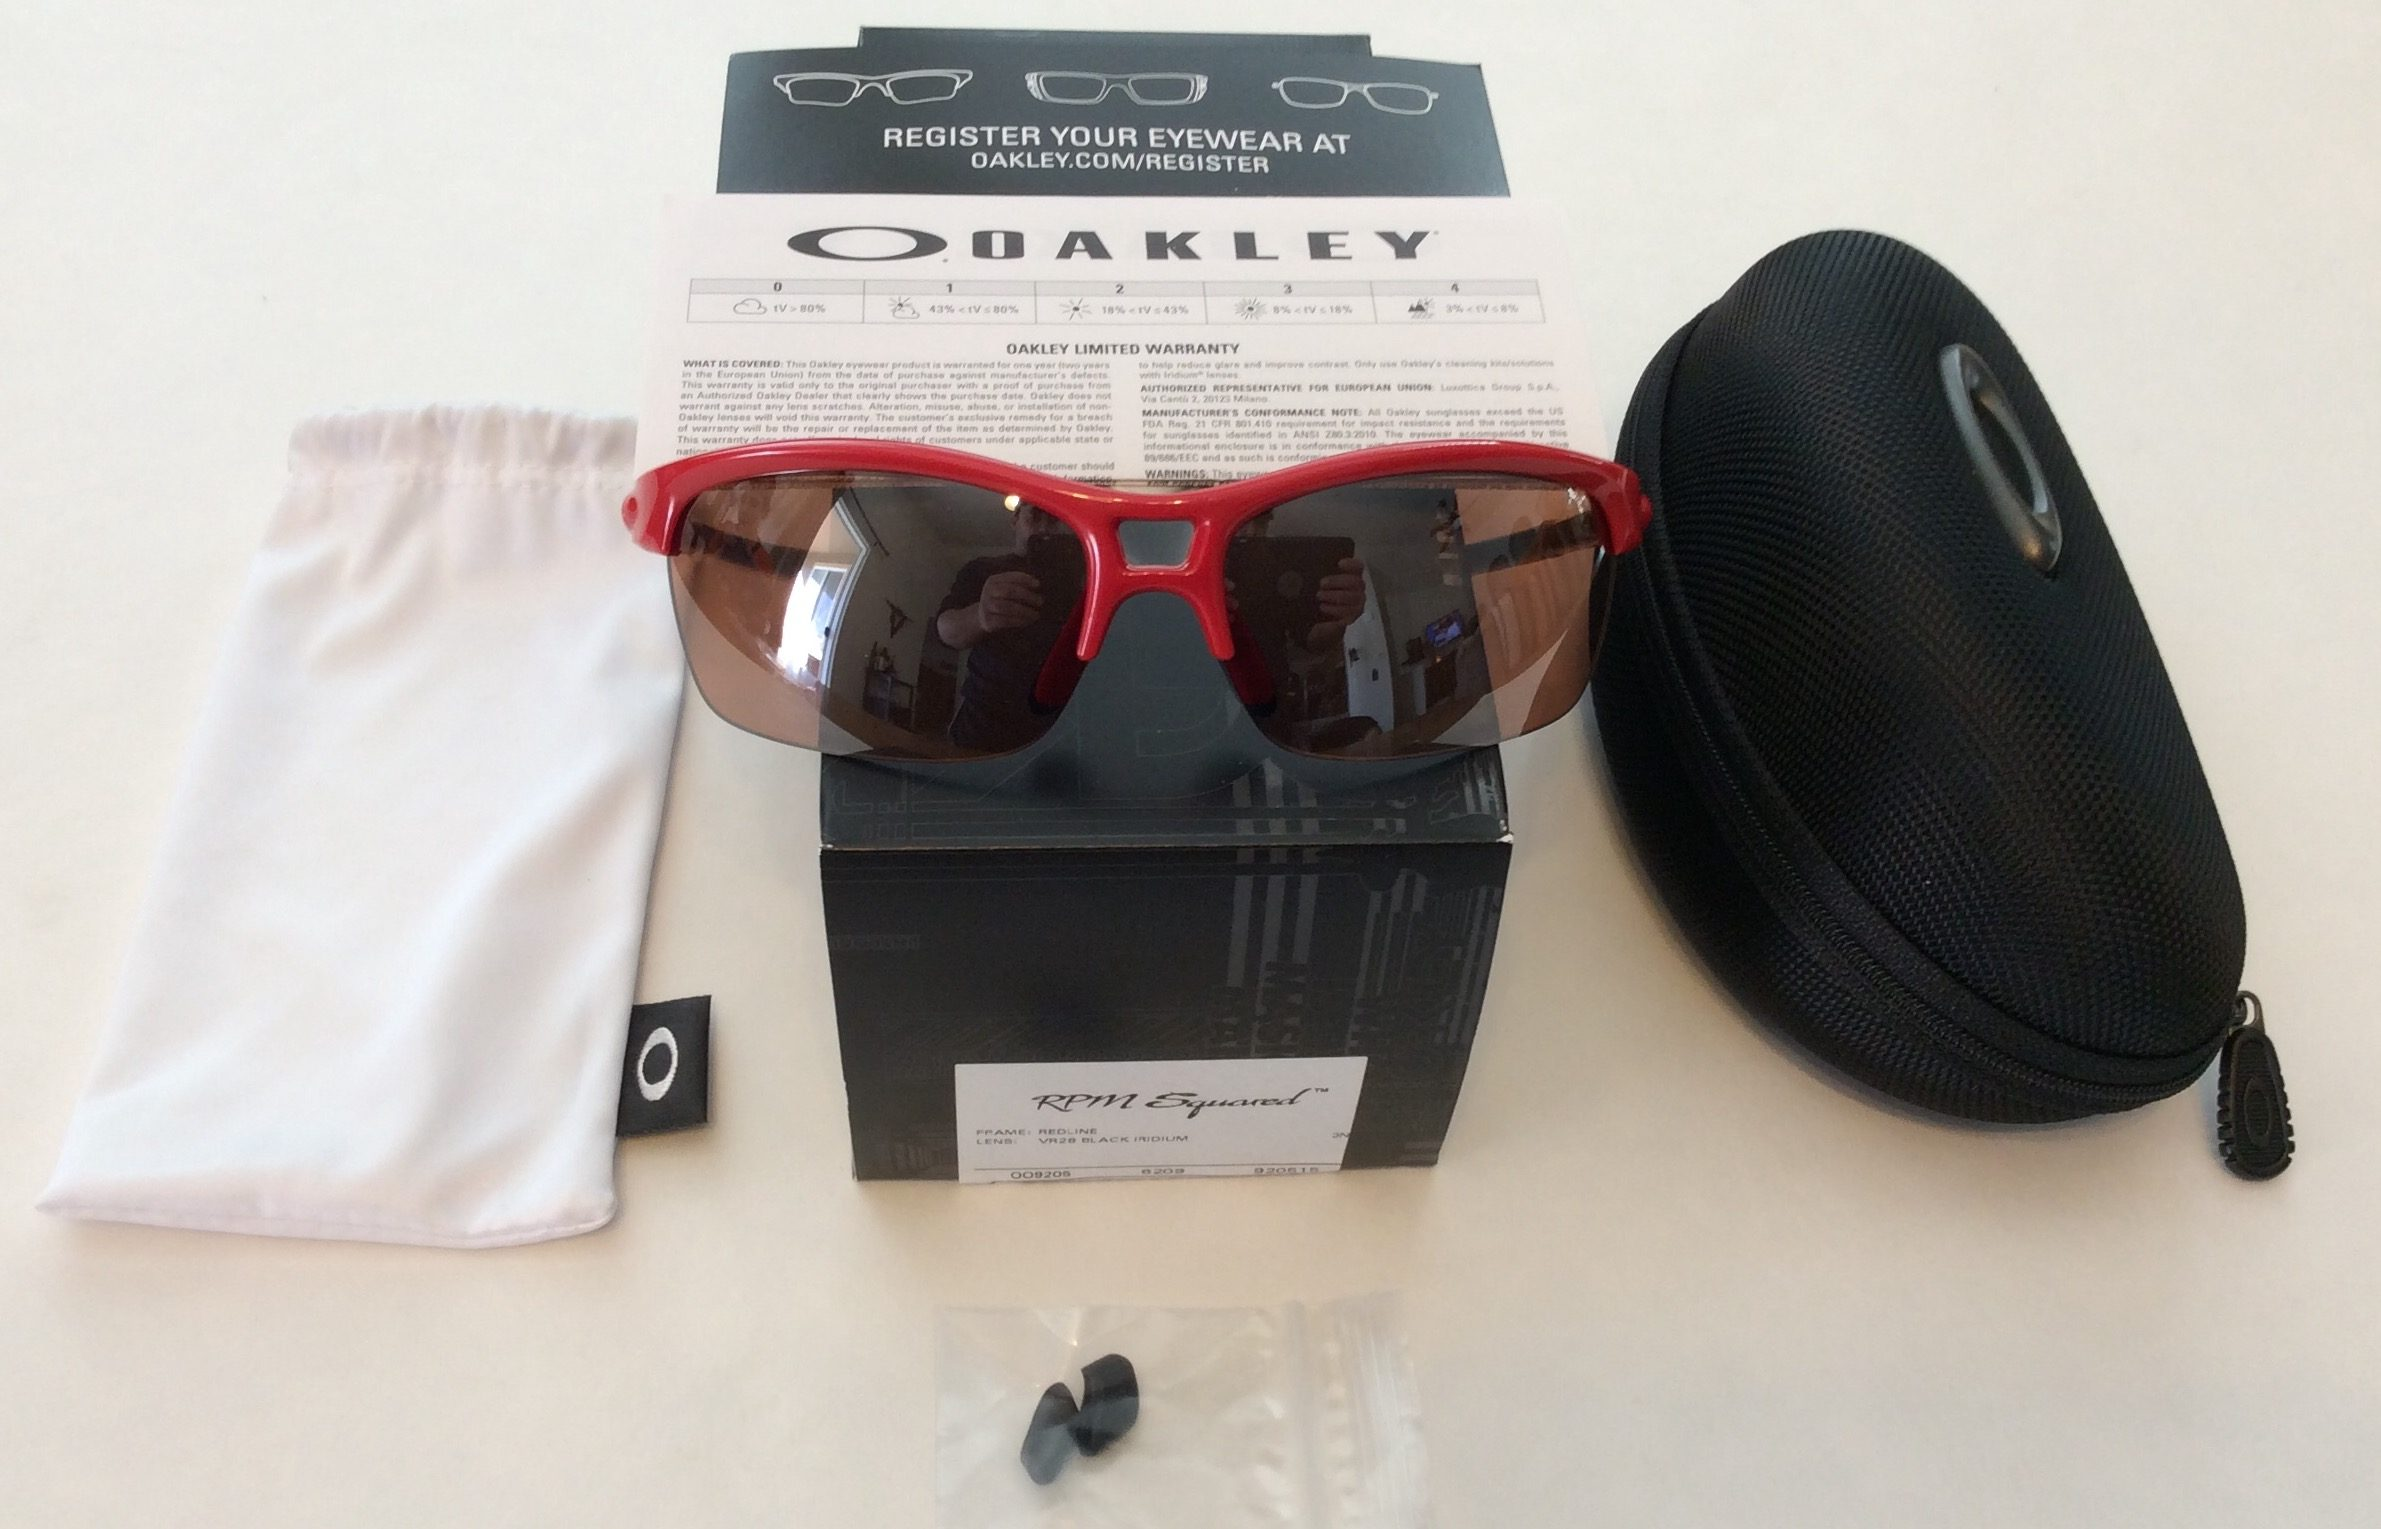 90b011805bb Oakley RPM Squared Sunglasses - Redline Red - VR28 Black Iridium OO9205-15